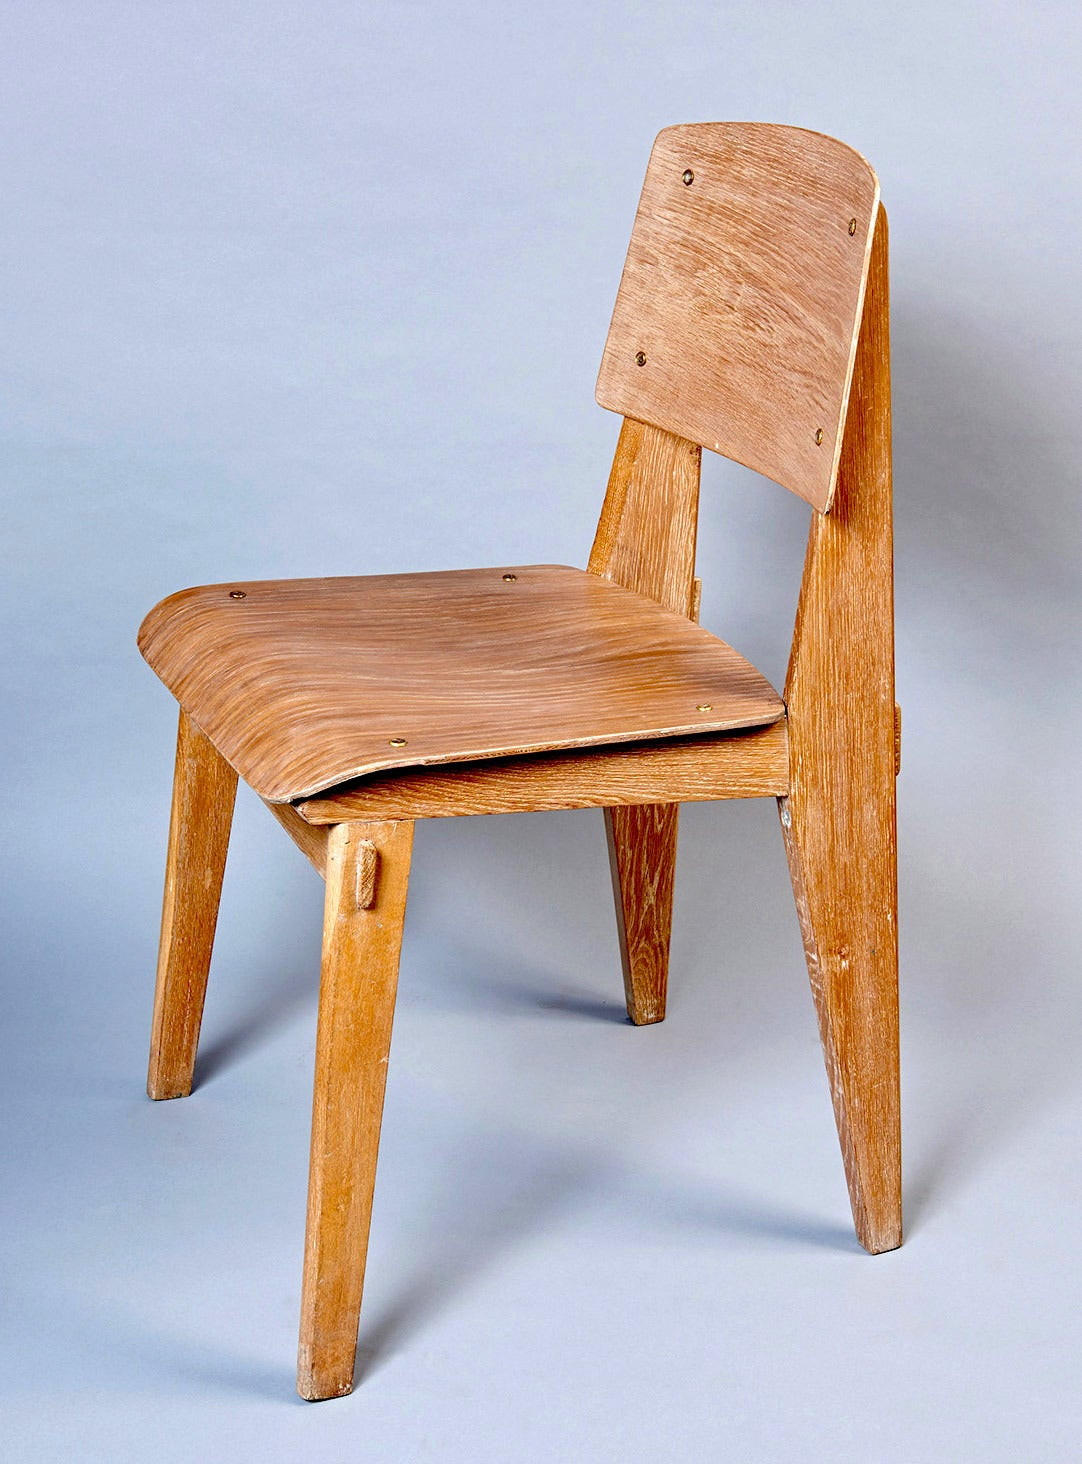 Standard chair tout bois by jean prouv at 1stdibs - Jean prouve chaise standard ...